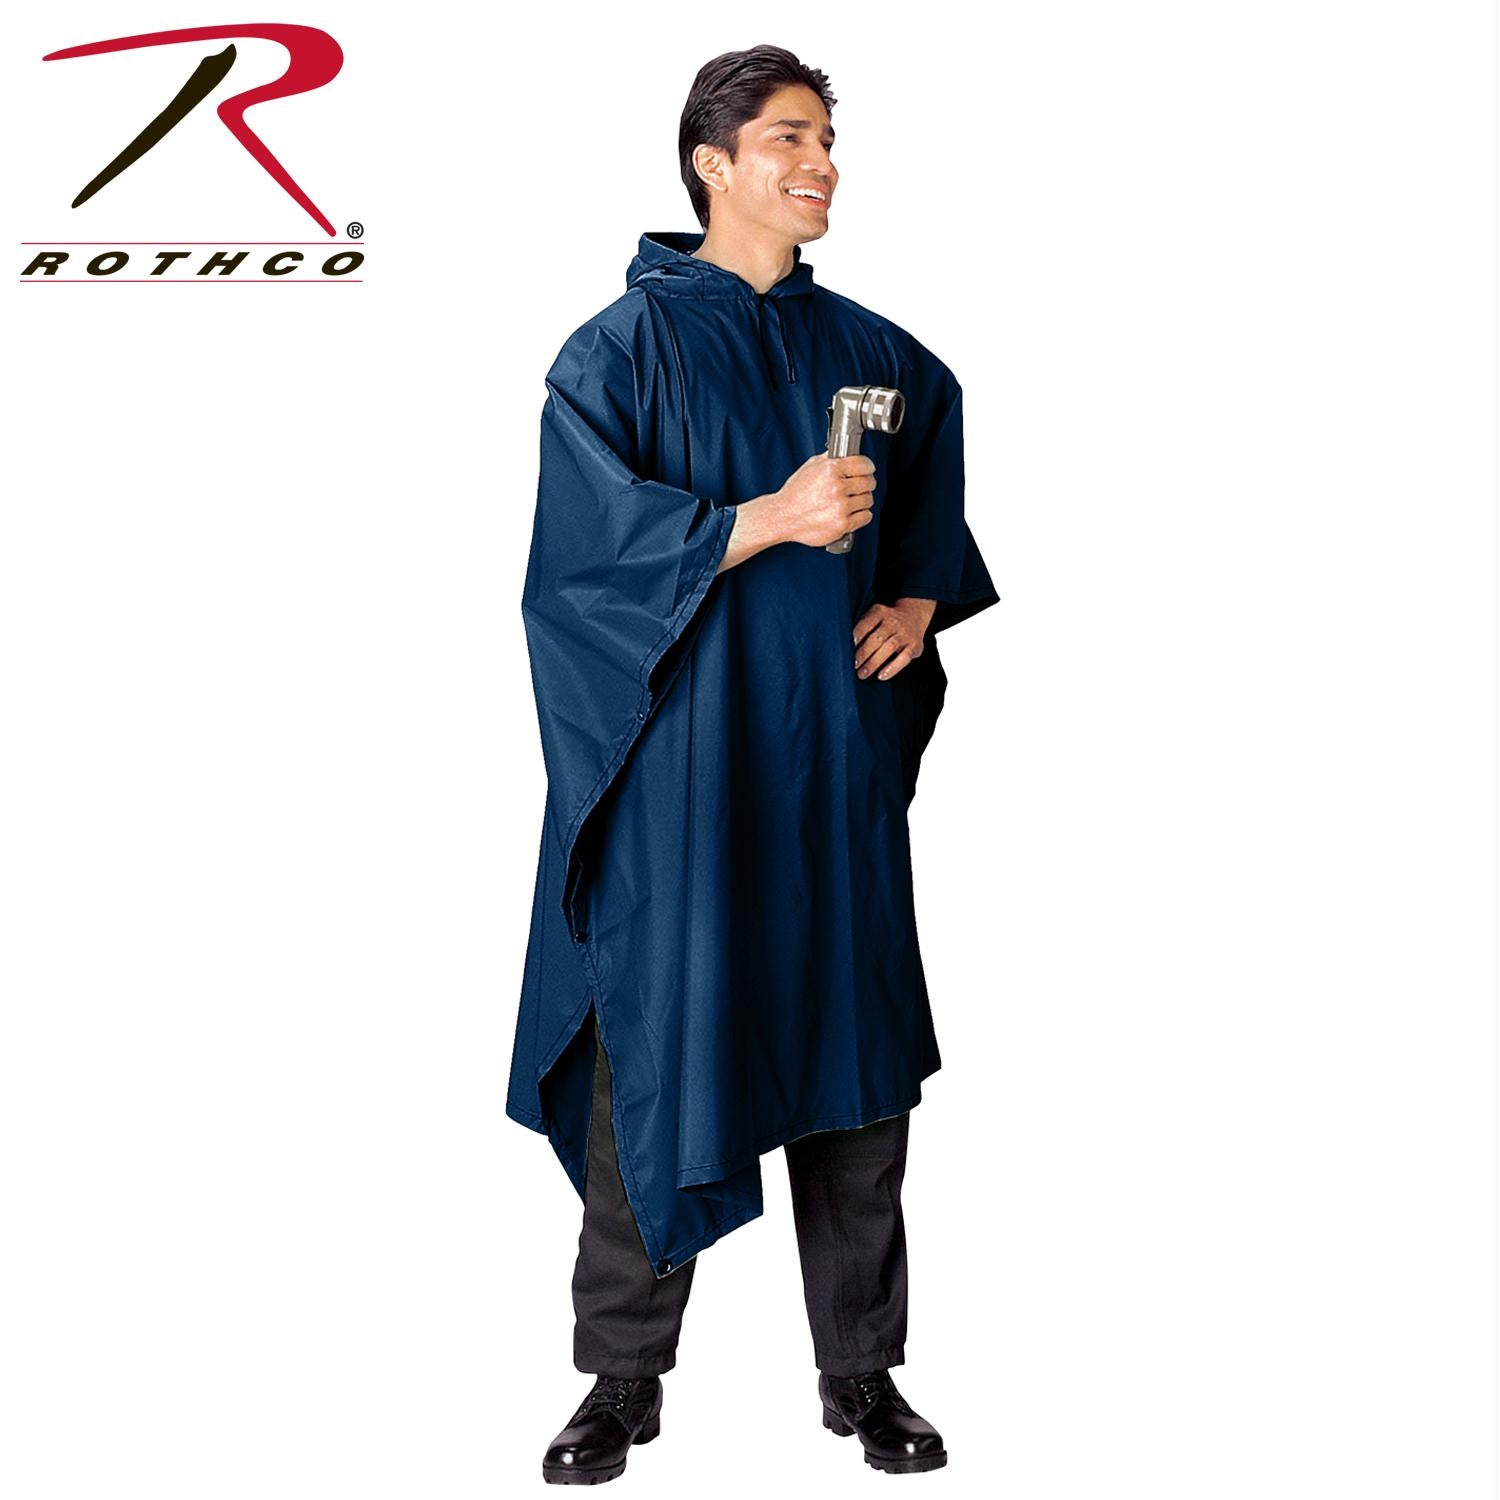 Rothco G.I. Type Military Rip-Stop Poncho - Navy Blue